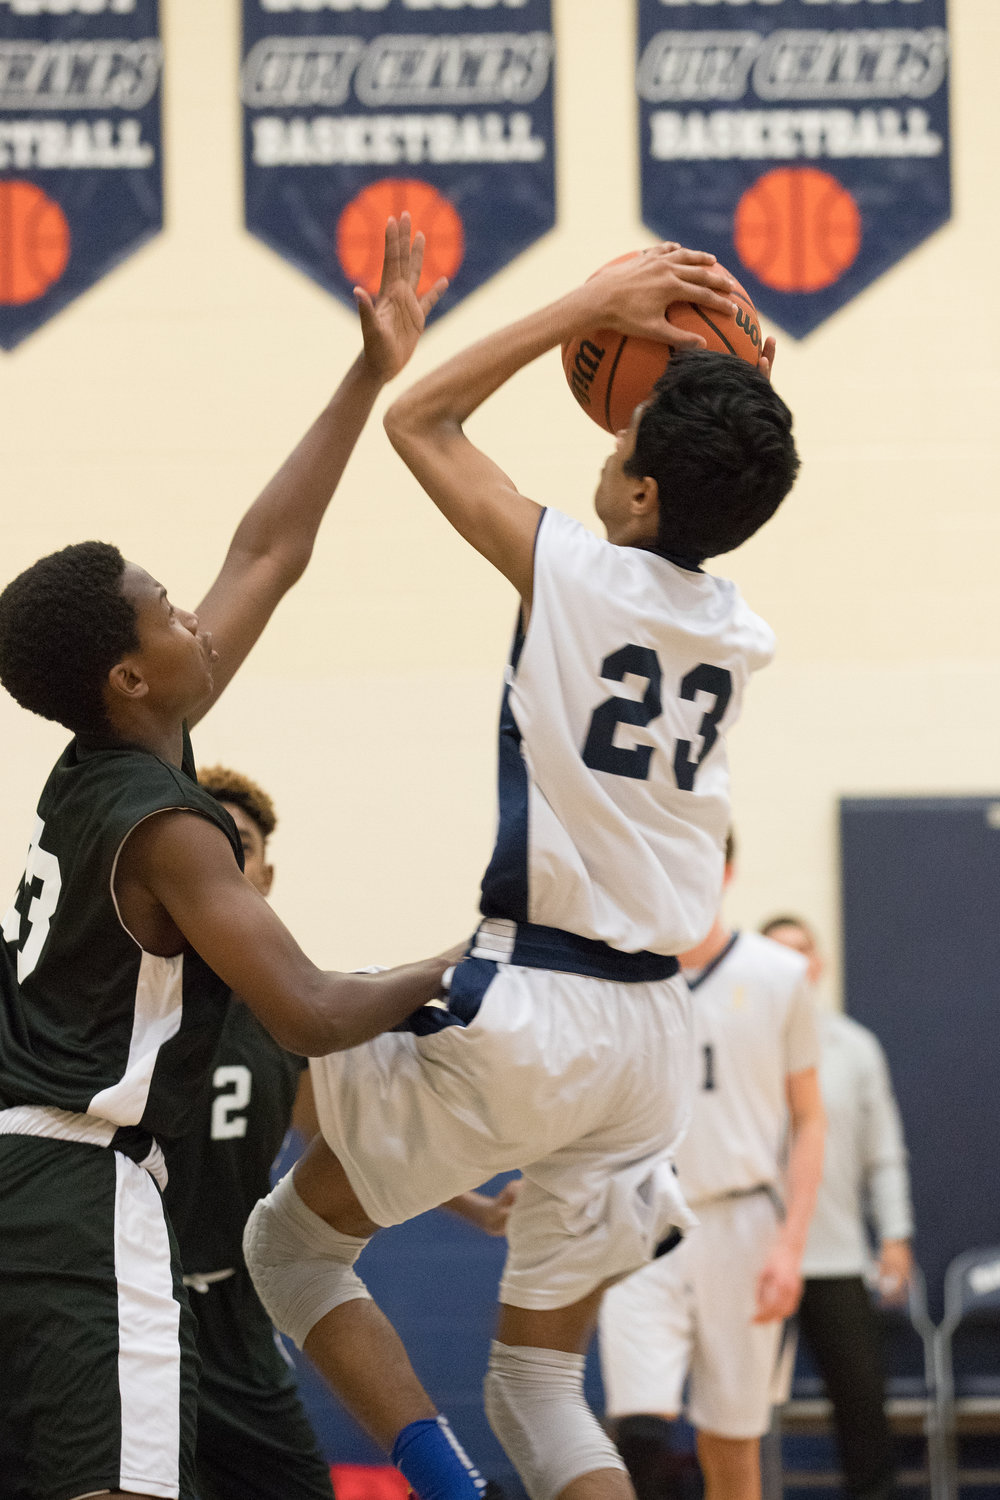 Rushil Patel goes in for a layup.jpg